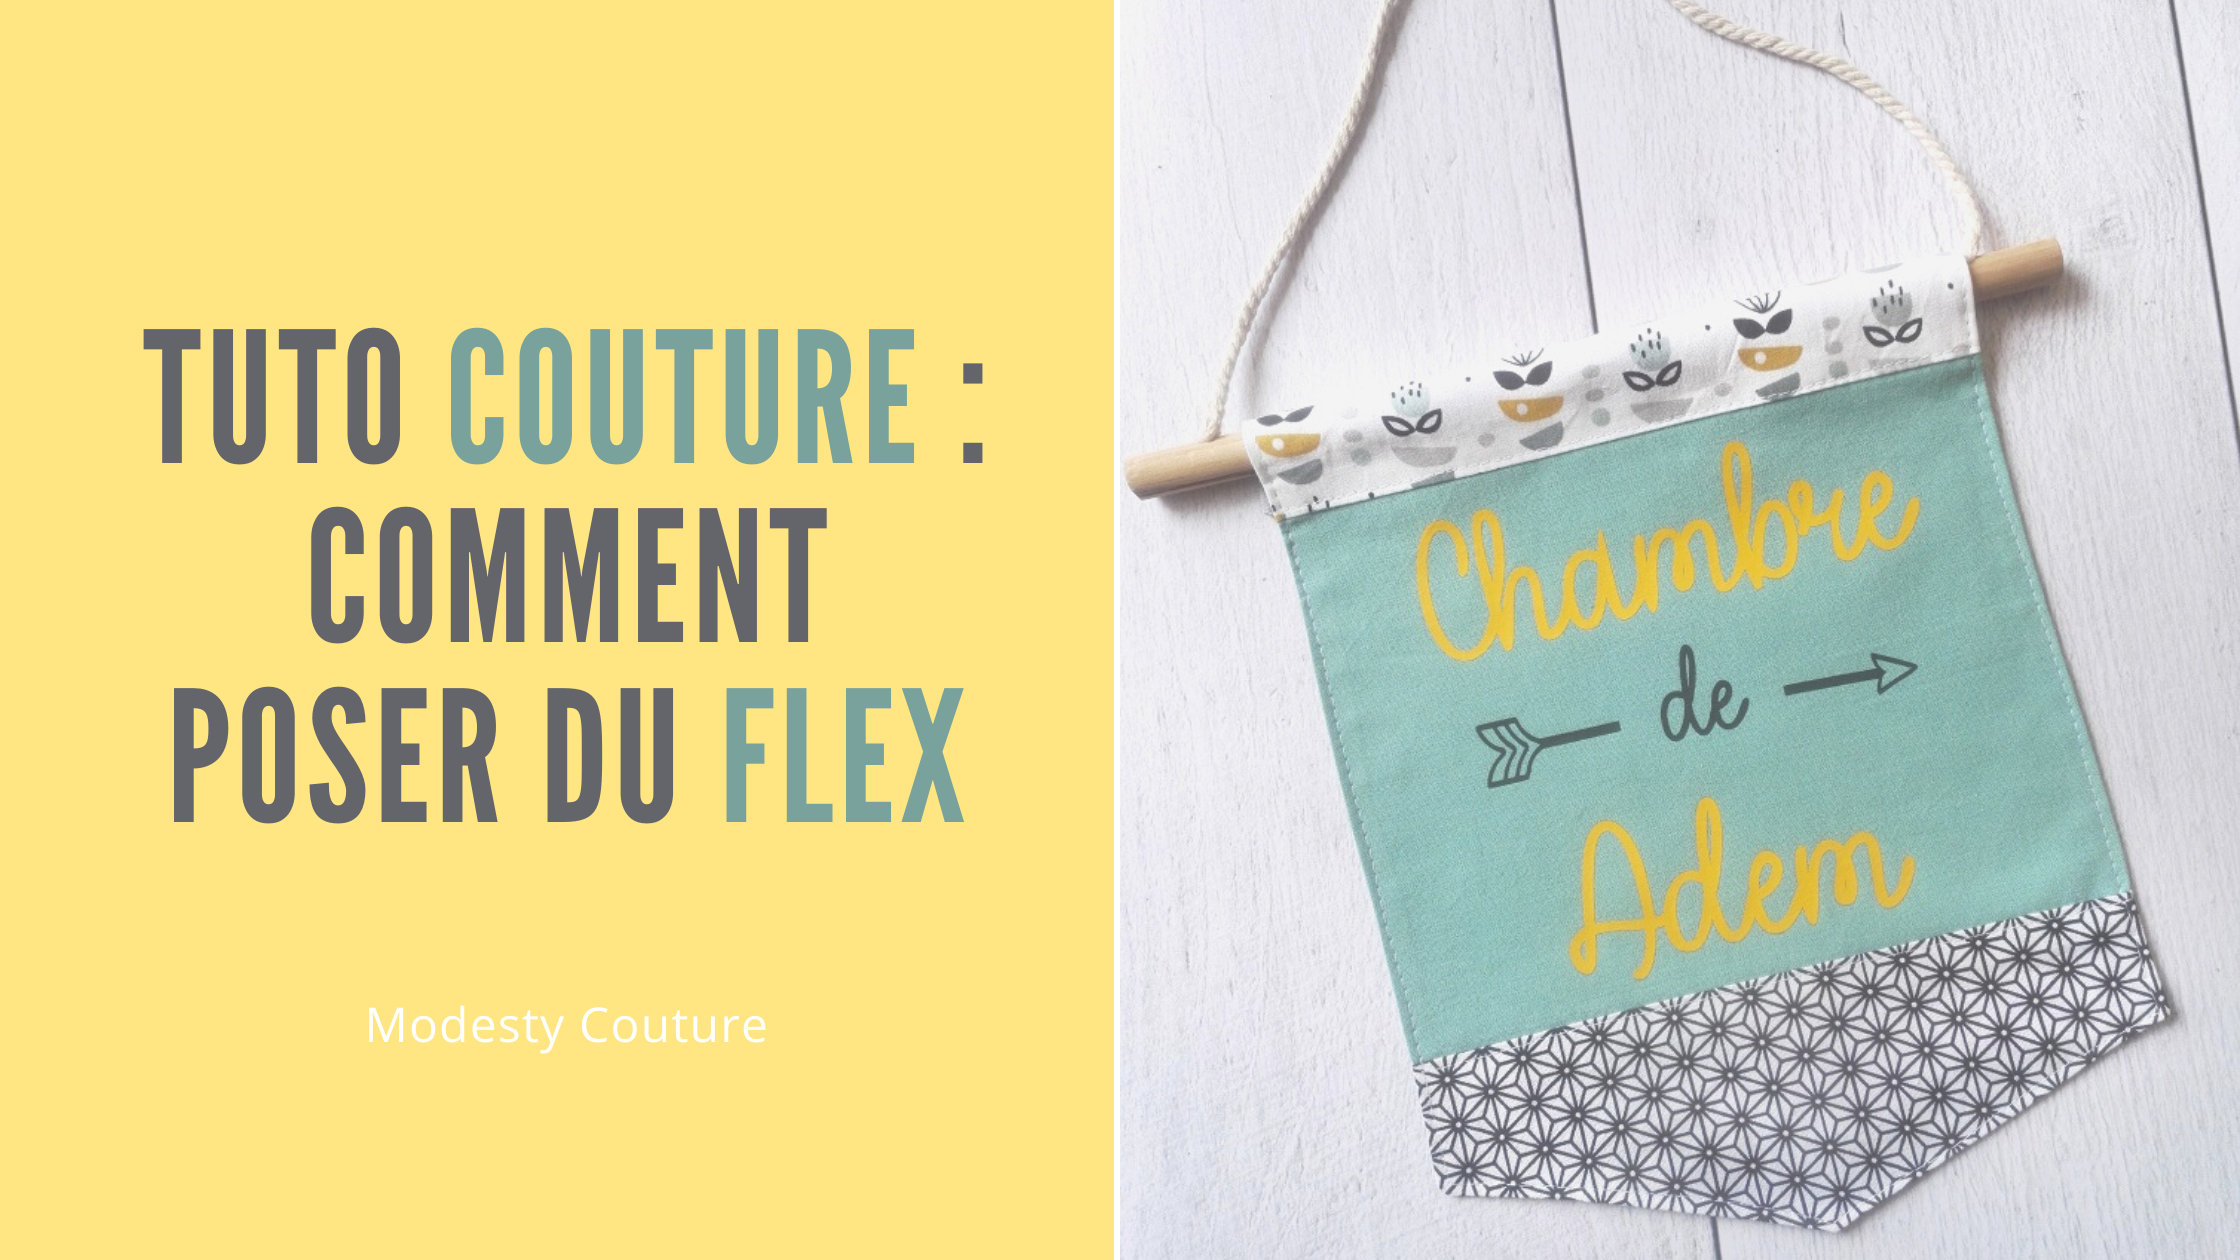 Tuto couture : comment poser du flex